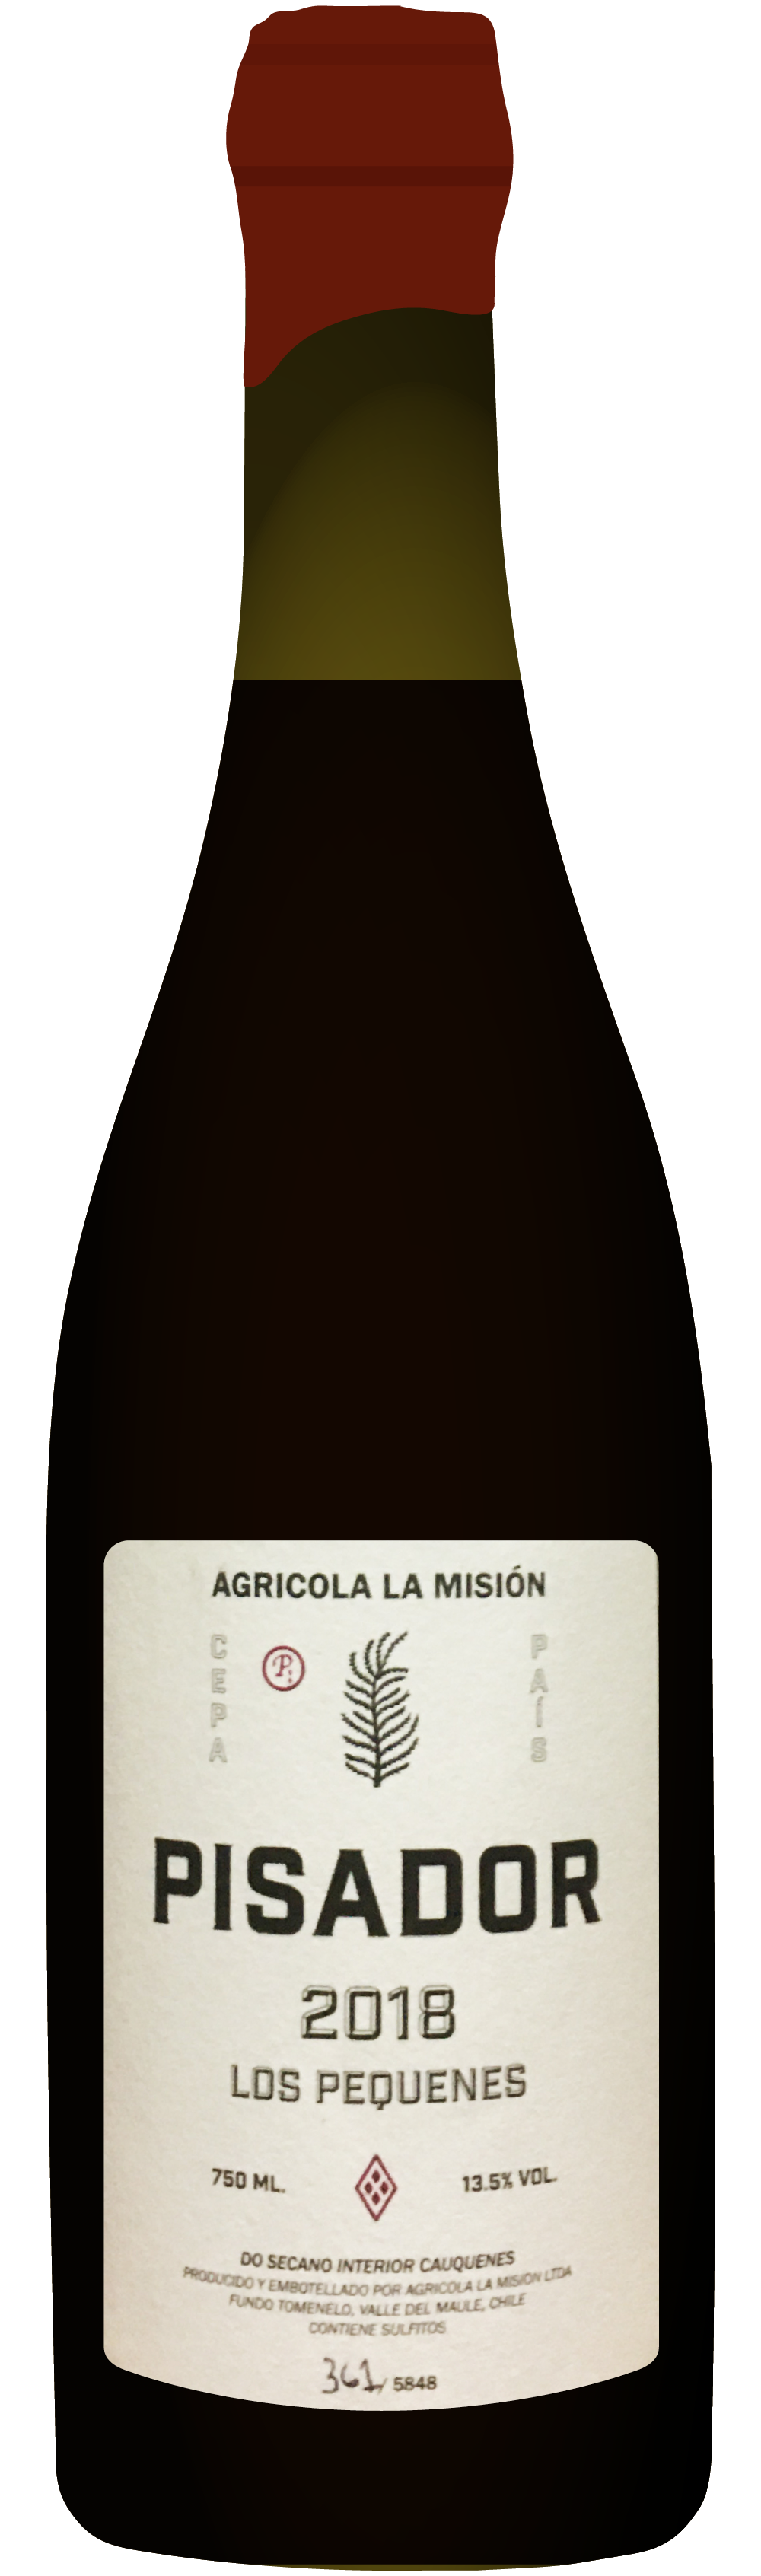 the natural wine company club march 2021 chile agricola la mision pisador